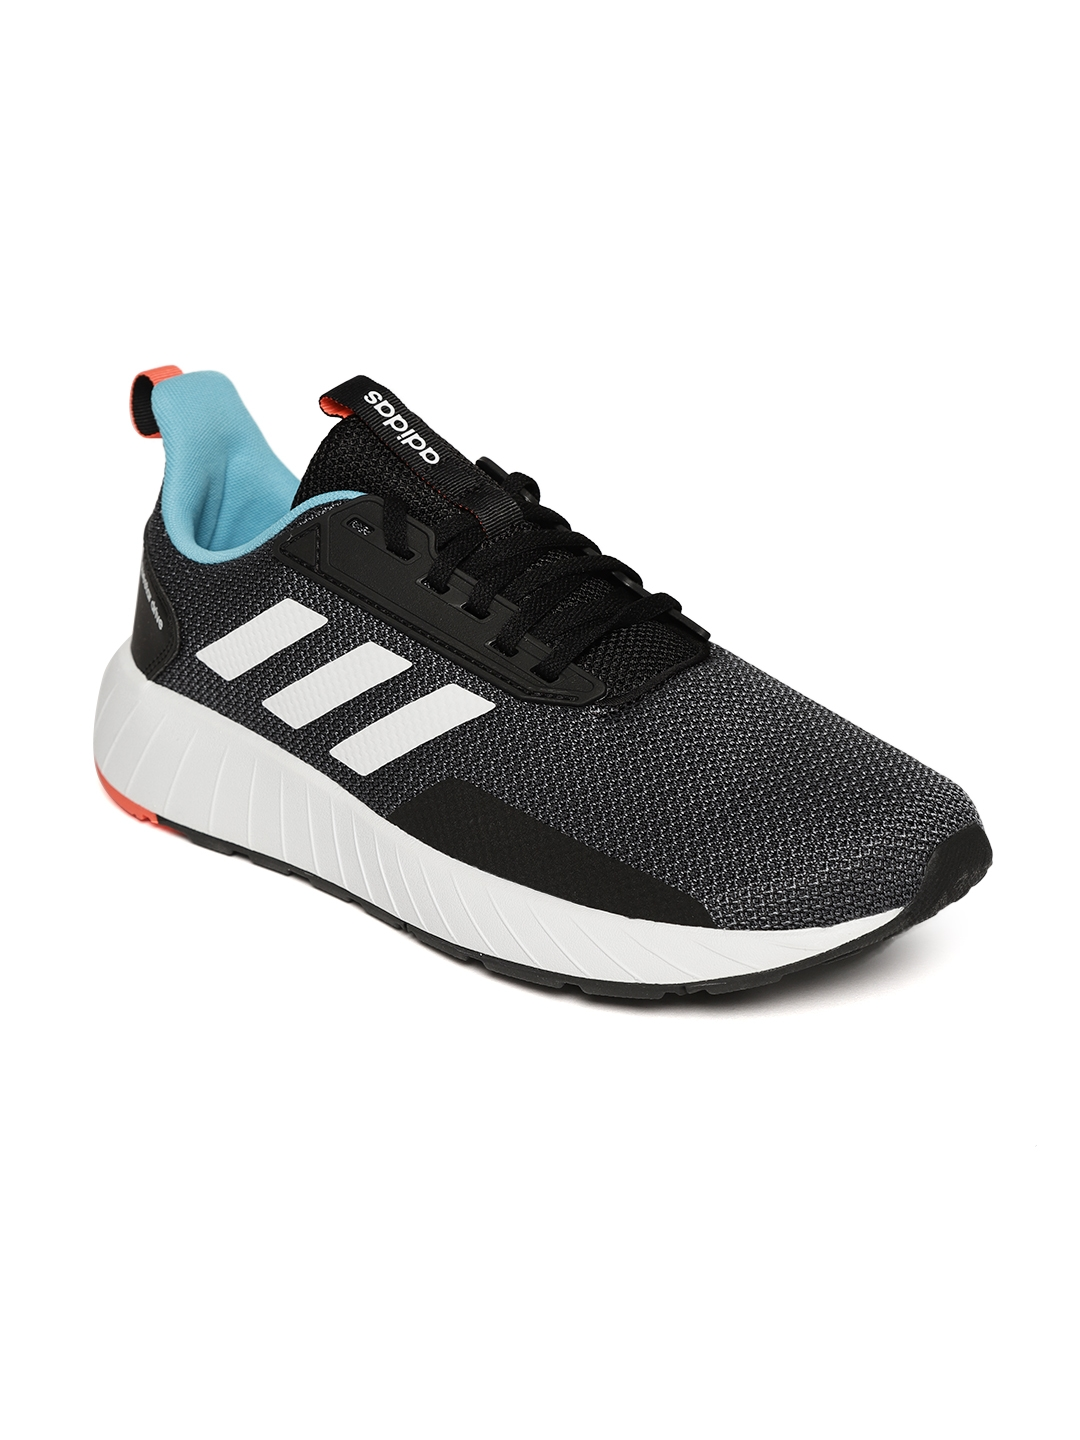 56de3cee6 Buy Adidas Men Grey   Black QUESTAR Drive Running Shoes - Sports ...